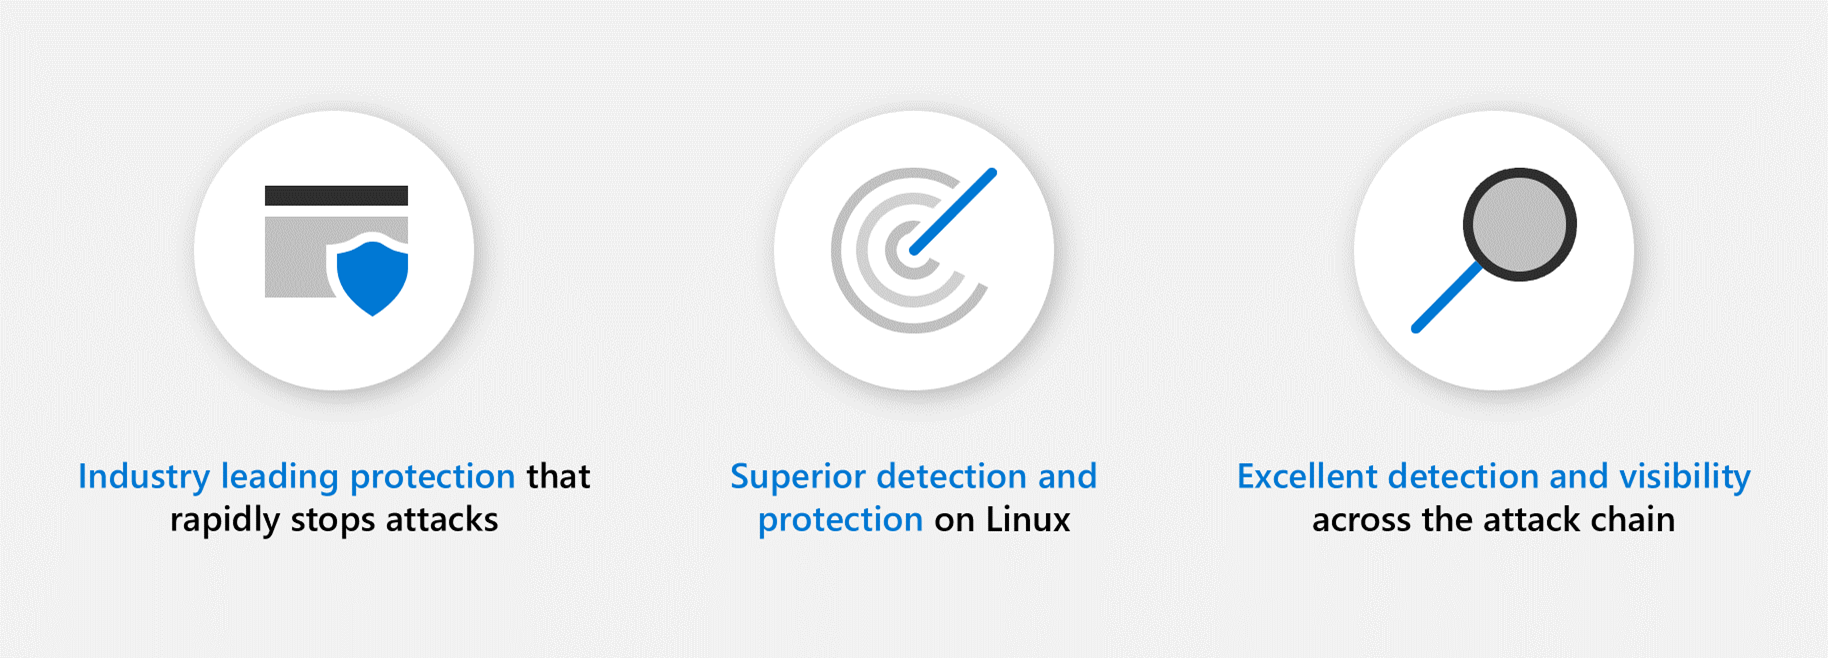 Three circular icon graphics depicting that Microsoft offers industry-leading protection, superior detection and protection on Linux, and excellent detection and visibility across the attach chain.